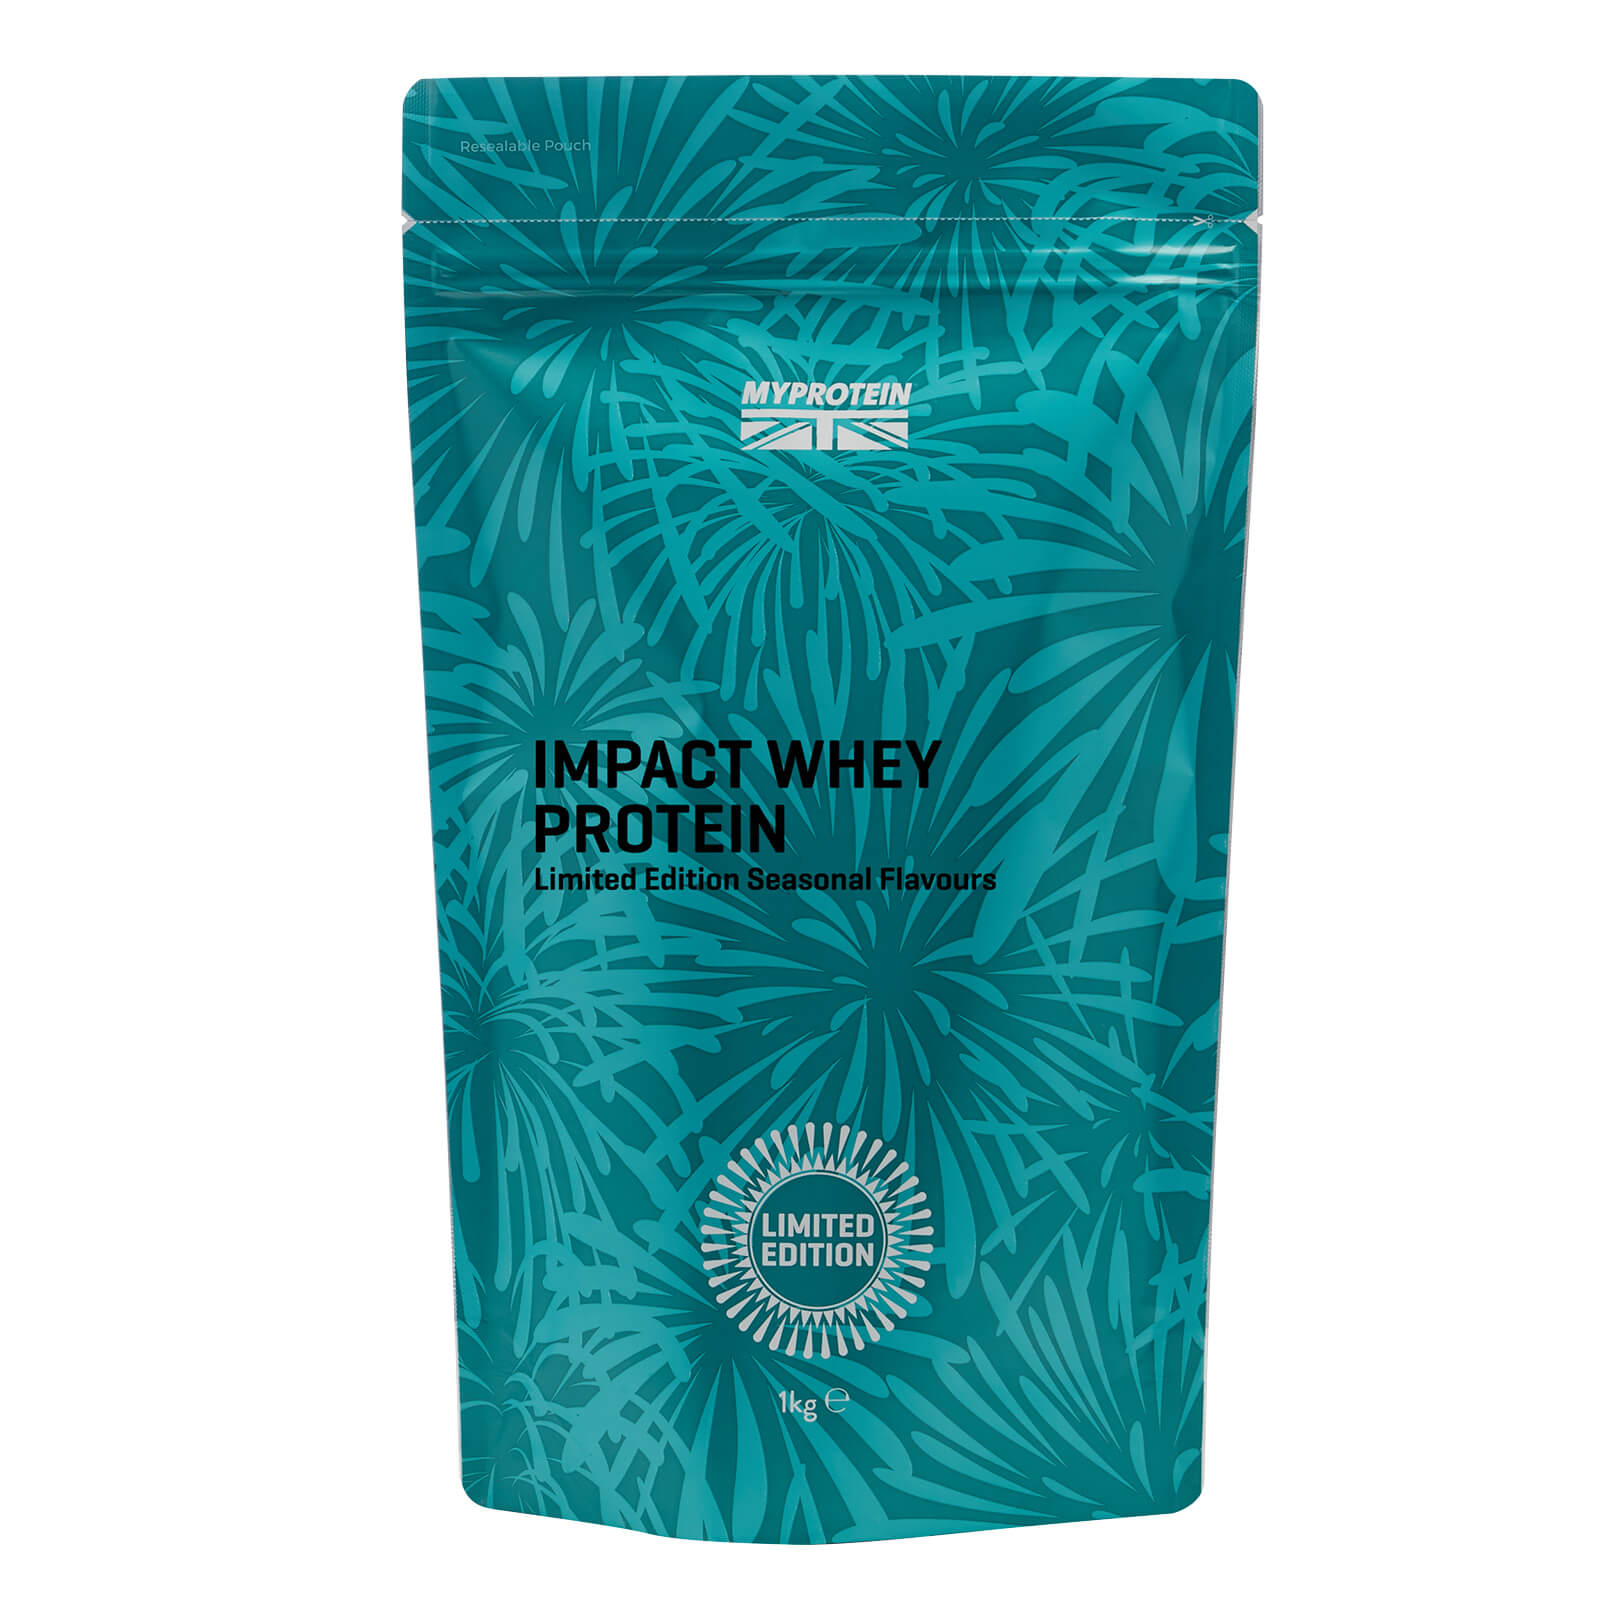 Impact Whey Protein - Limited Edition Seasonal Flavours, Red Apple, 1kg